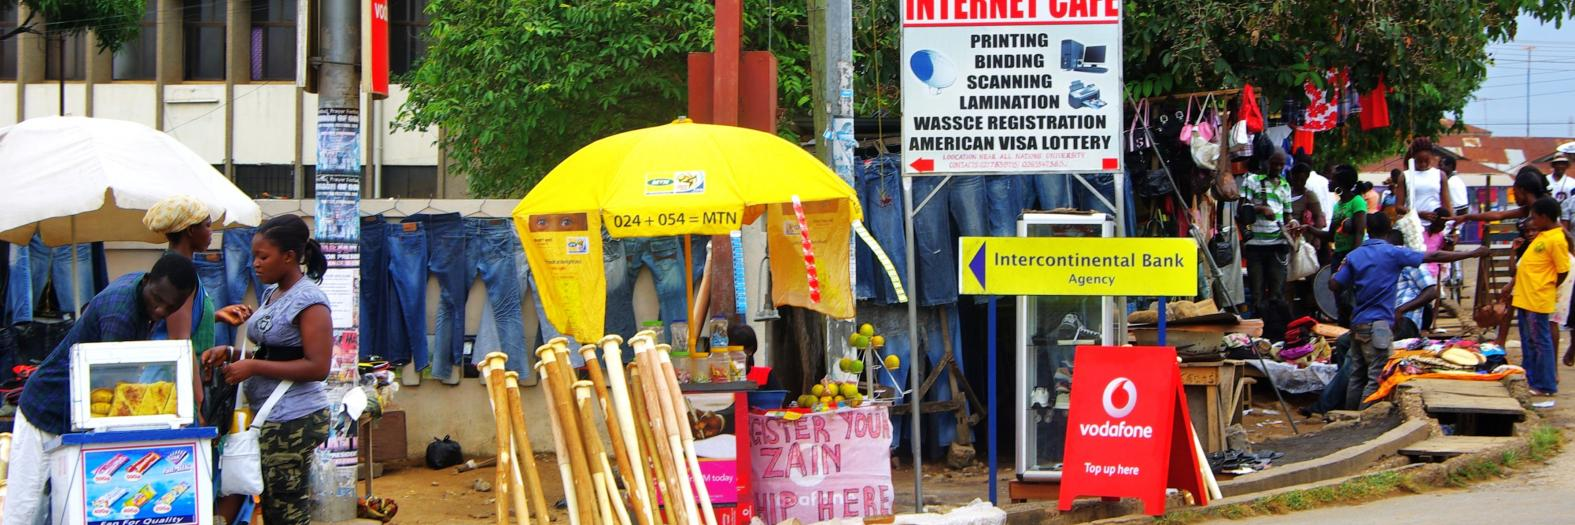 "An Internet café in urban Ghana <a href=""http://flic.kr/p/8uL3pC"">(photo: Alan Lew, 2010</a>)"